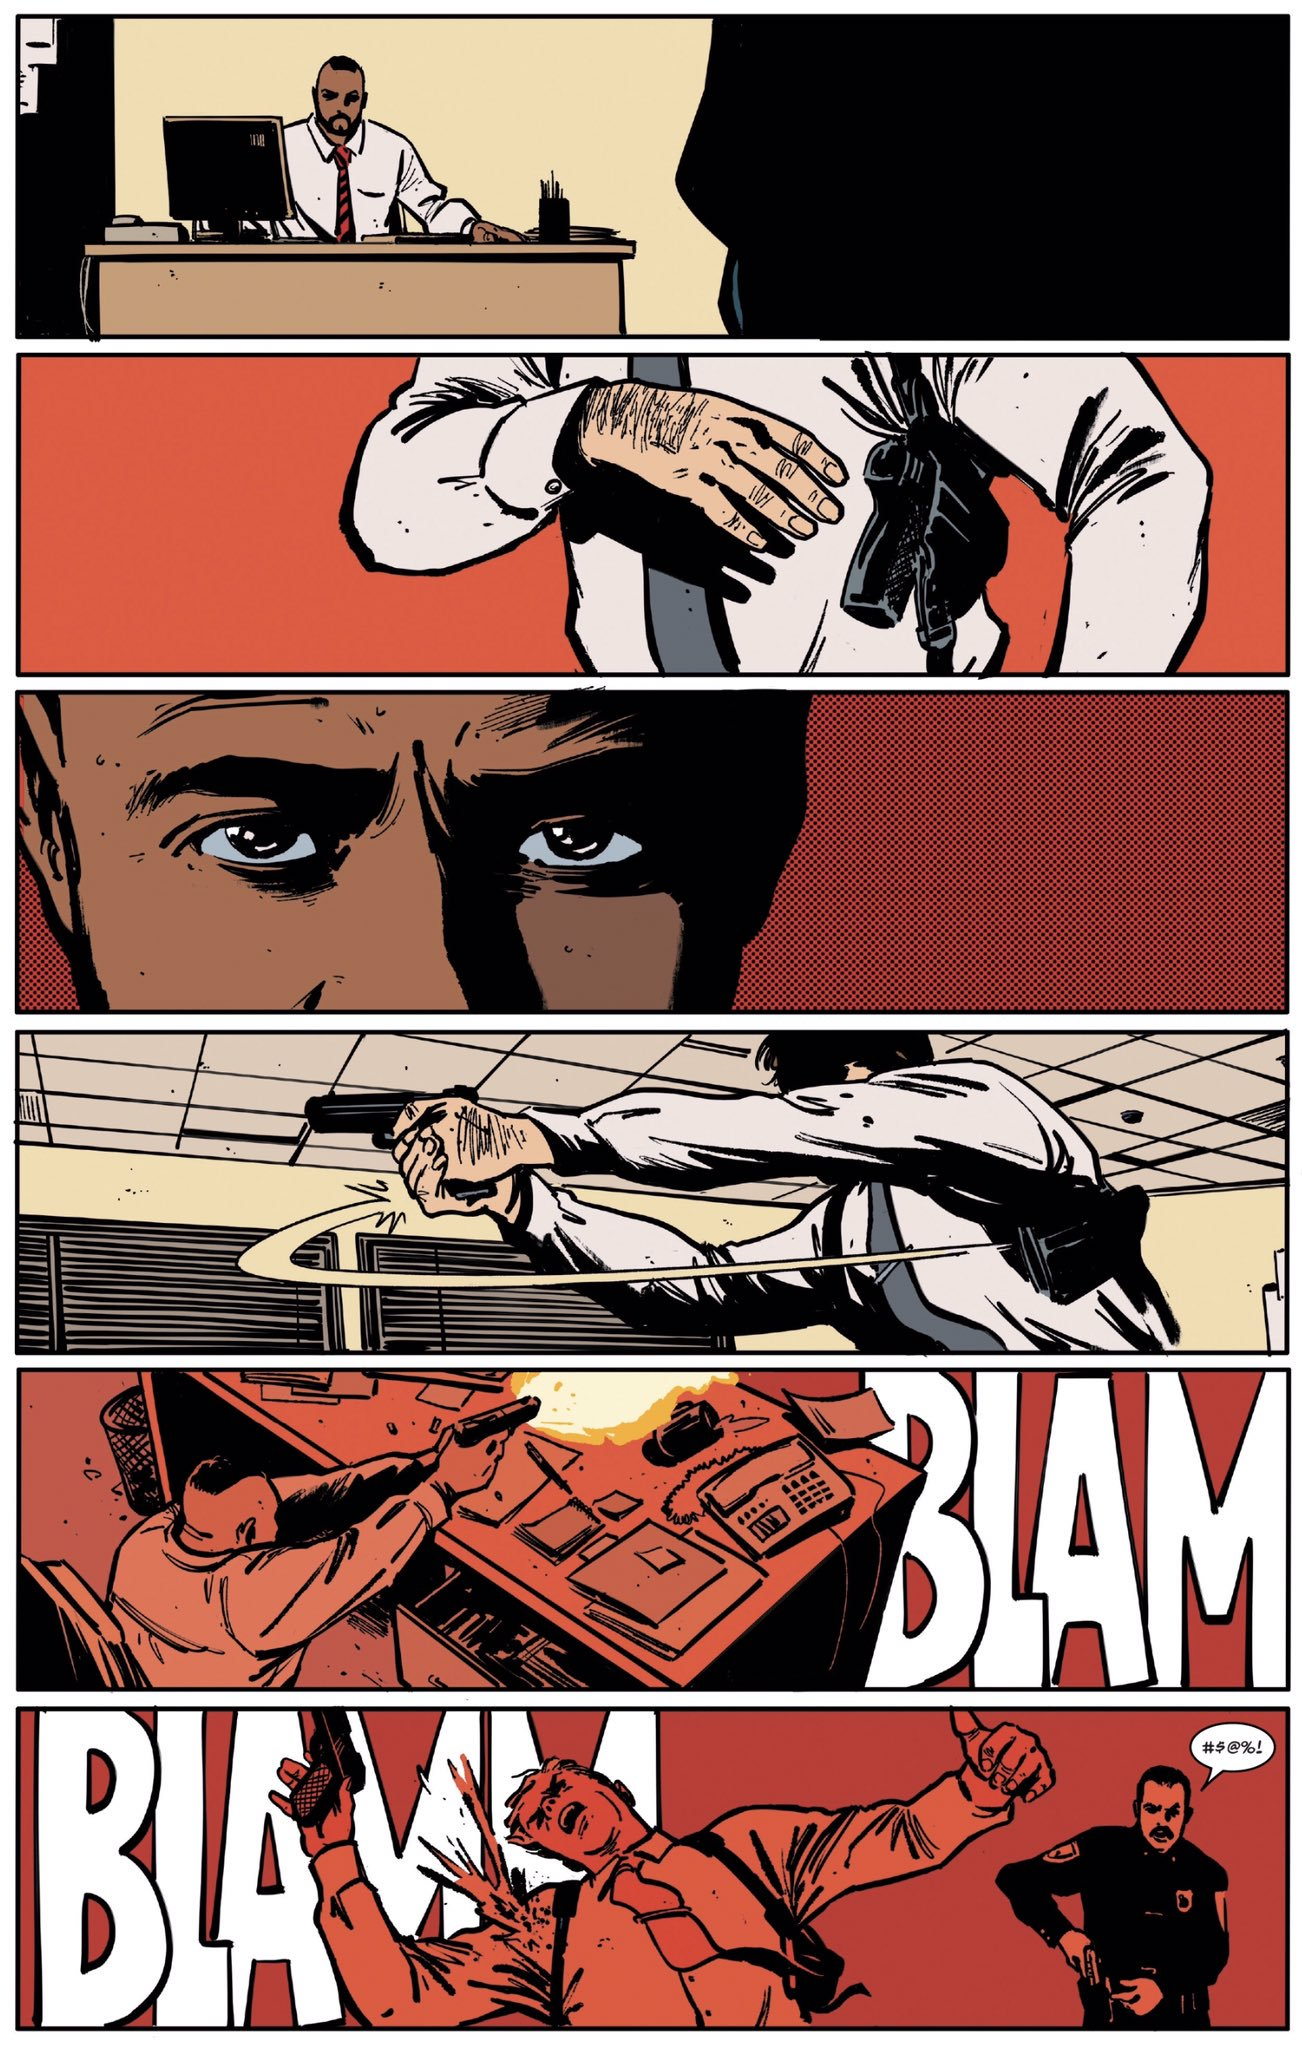 Daredevil #10  features a nigh-perfect synergy of lettering, artwork, and script.